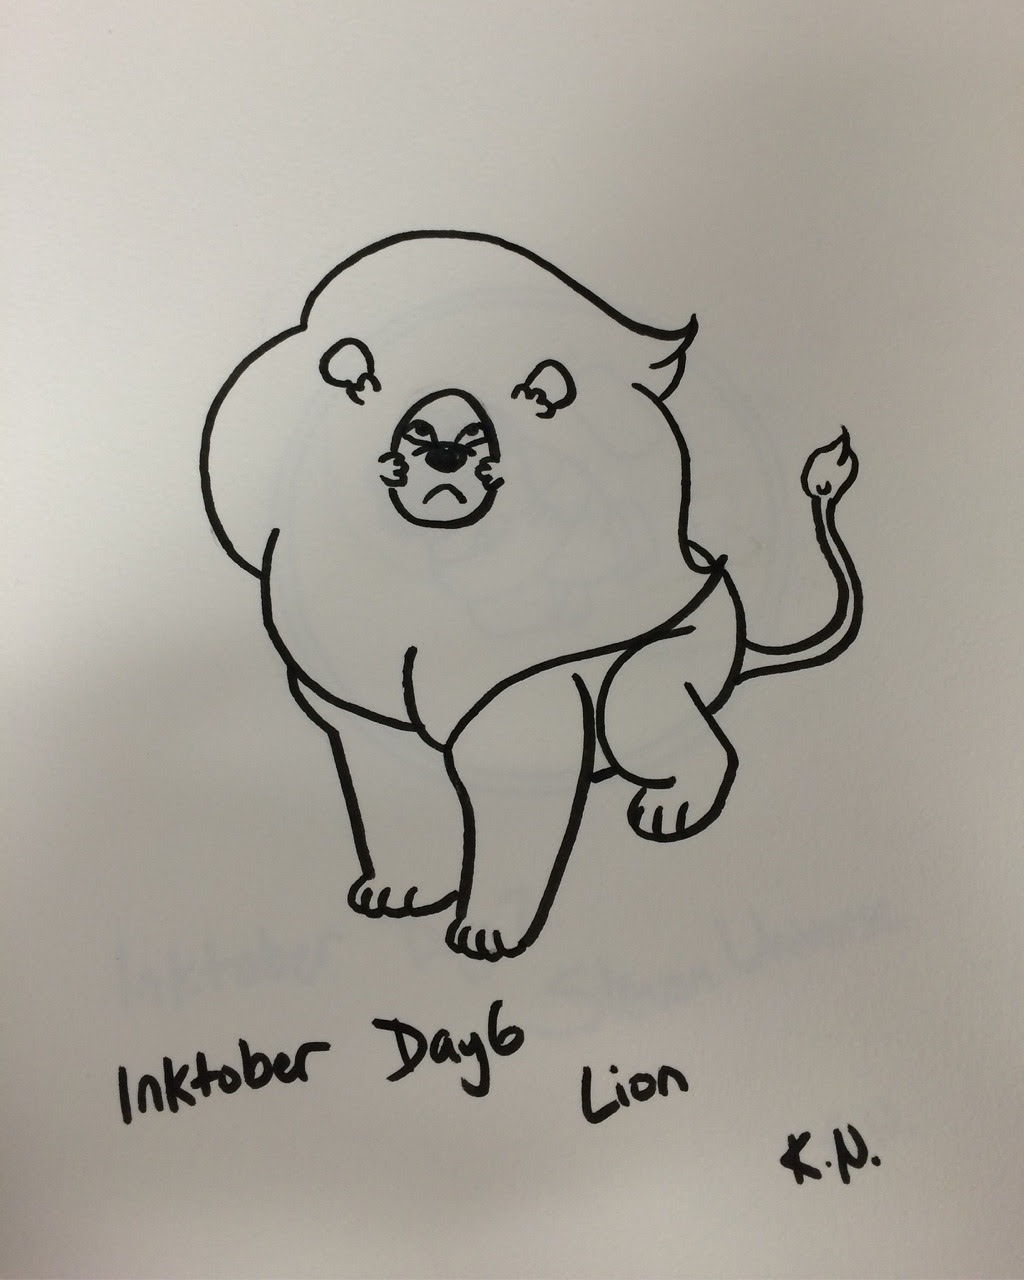 Late Inktober Day 6 and Inktober Day 7: Featuring Lion and Steven!